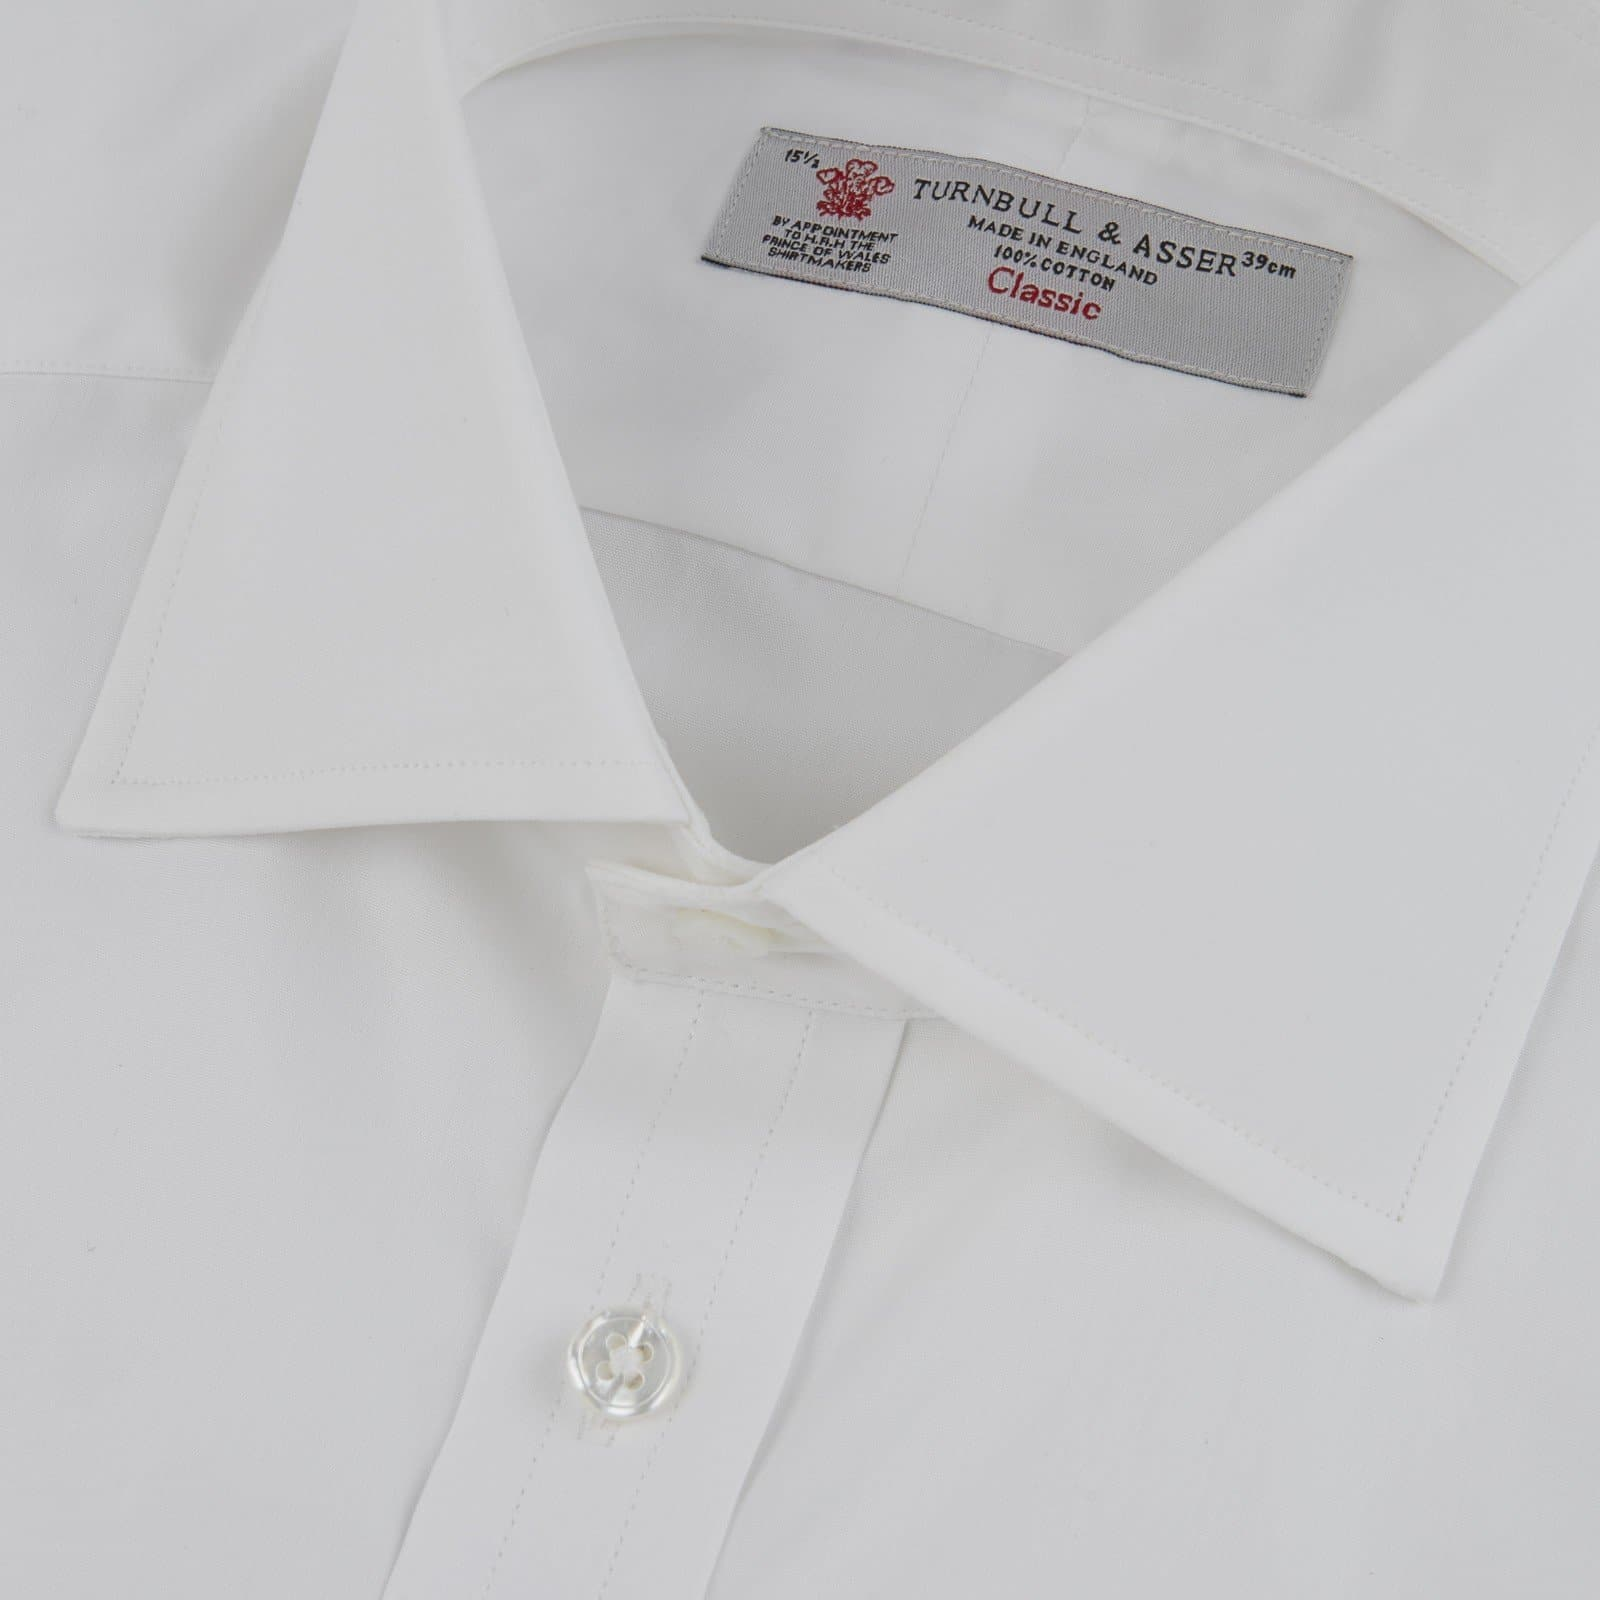 White Cotton Shirt by Turnbull & Asser - Dr. No Edition - 007STORE